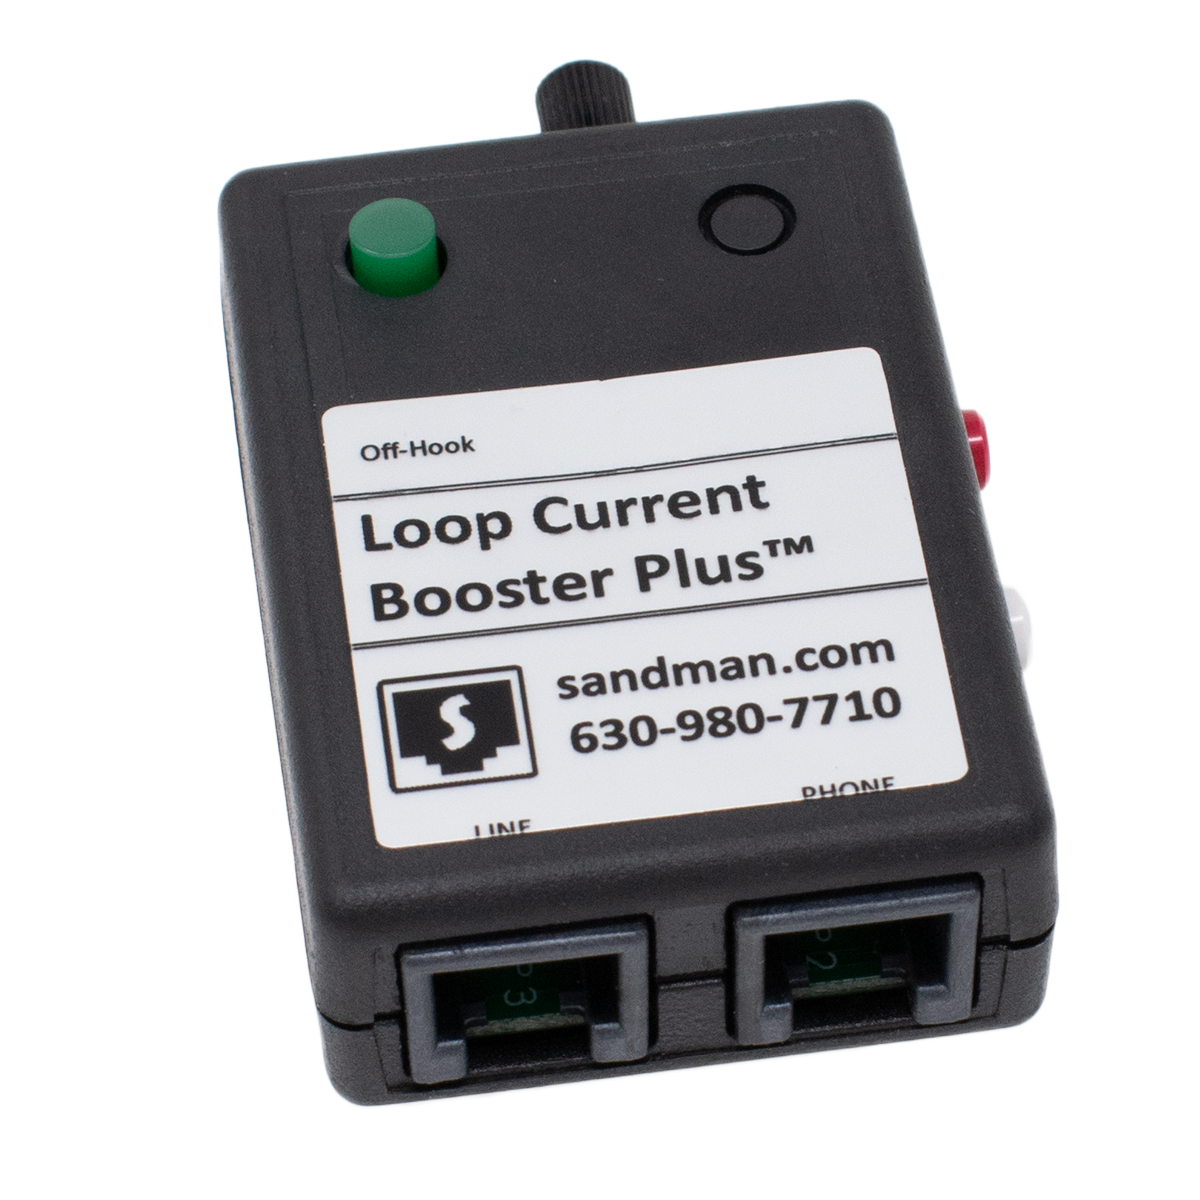 Loop Current Booster™ PLUS from sandman.com